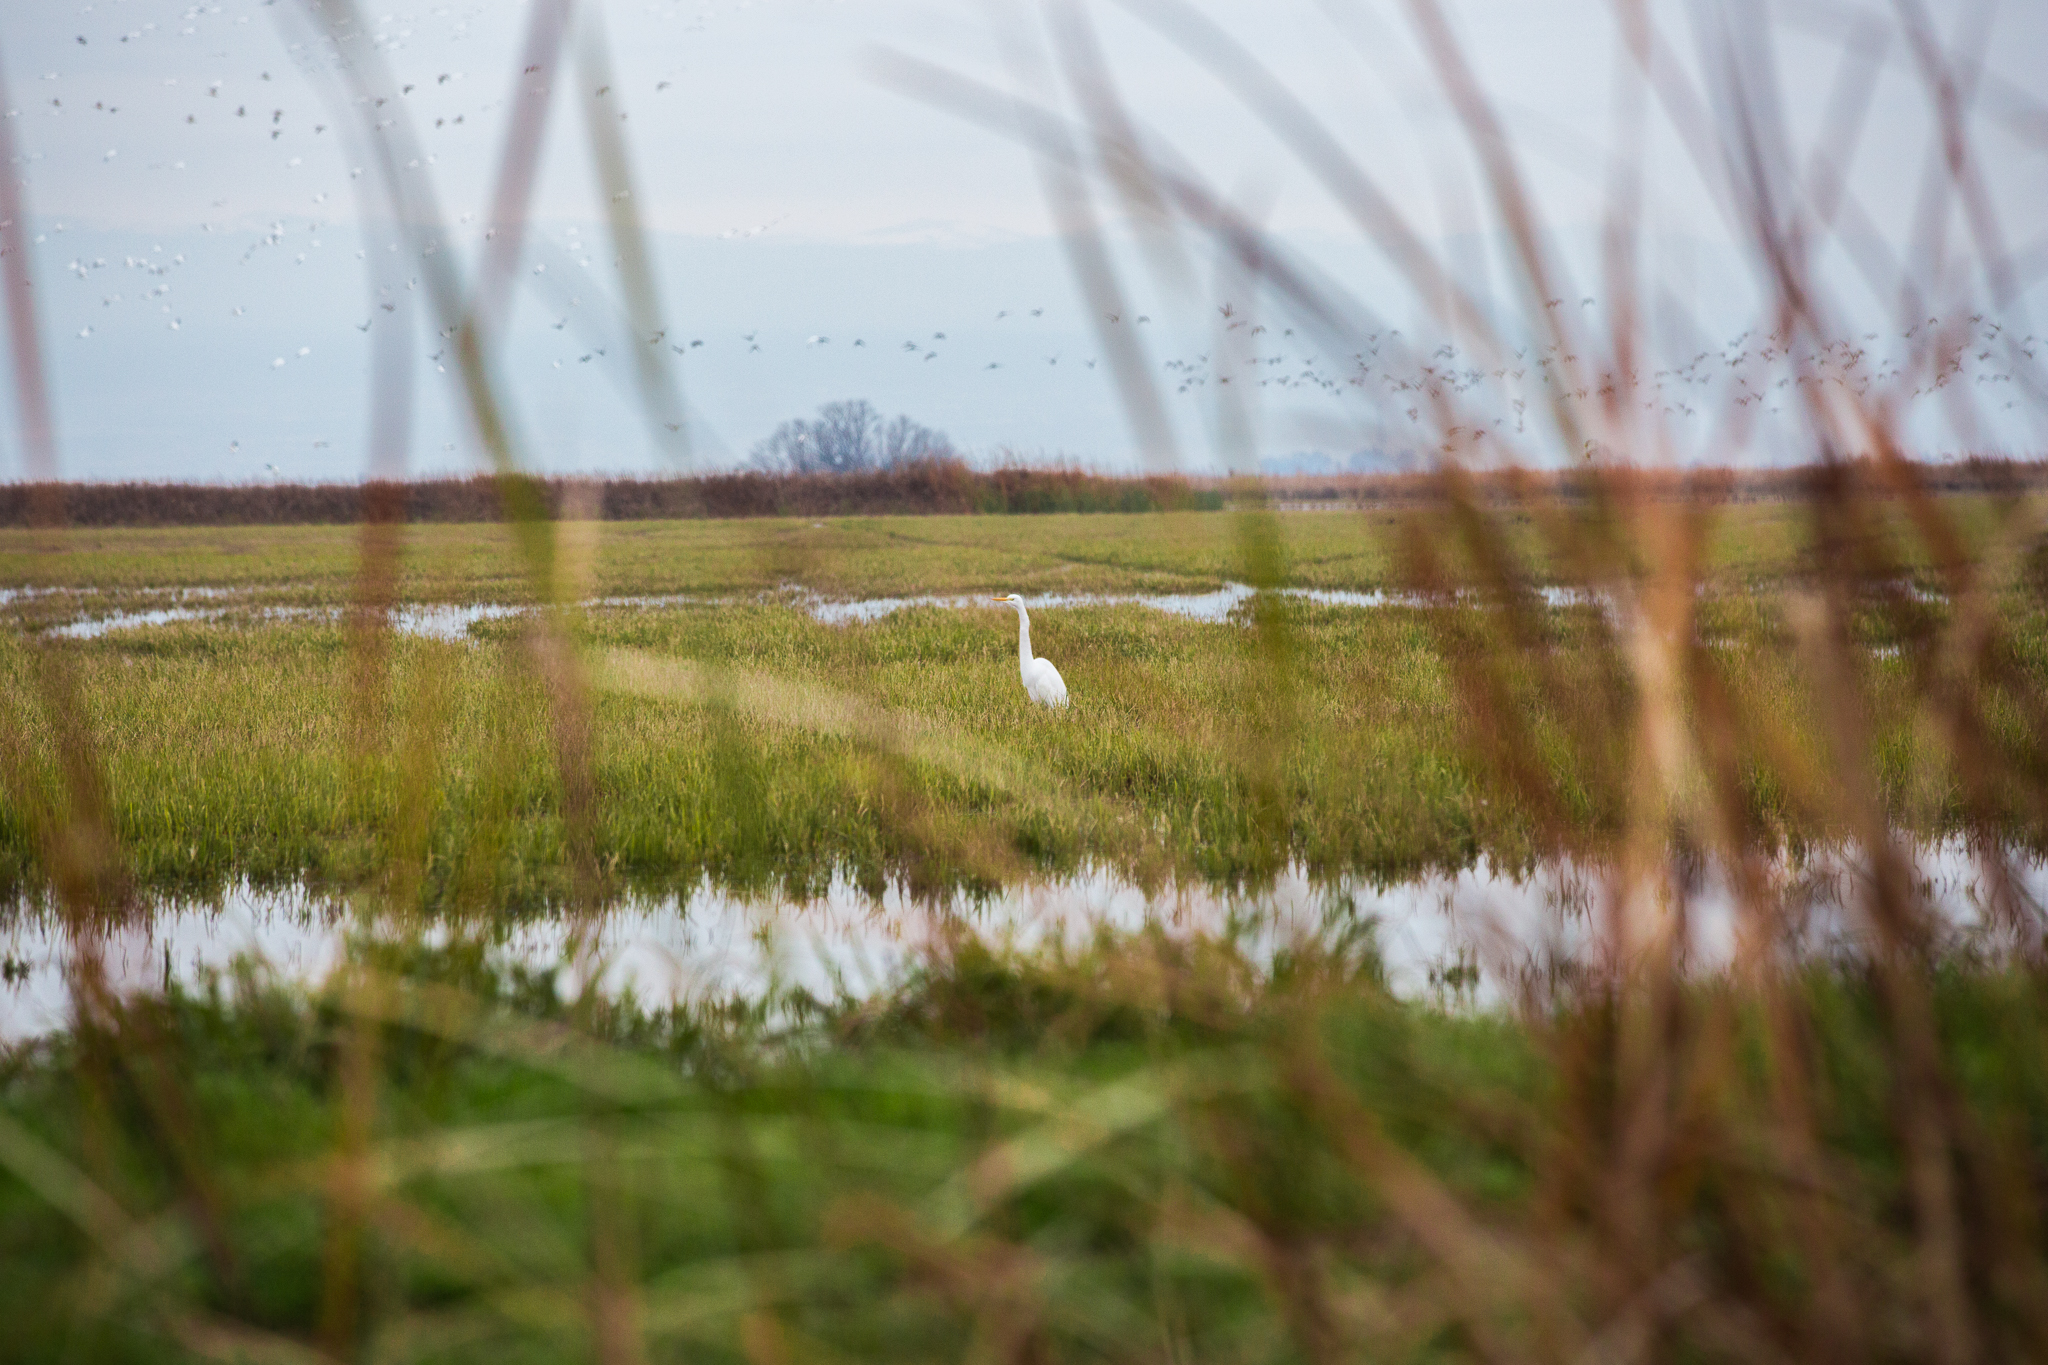 The flooded rice fields along the Pacific Flyway attract many species of birds; including egrets, herons, oystercatchers, and godwits.